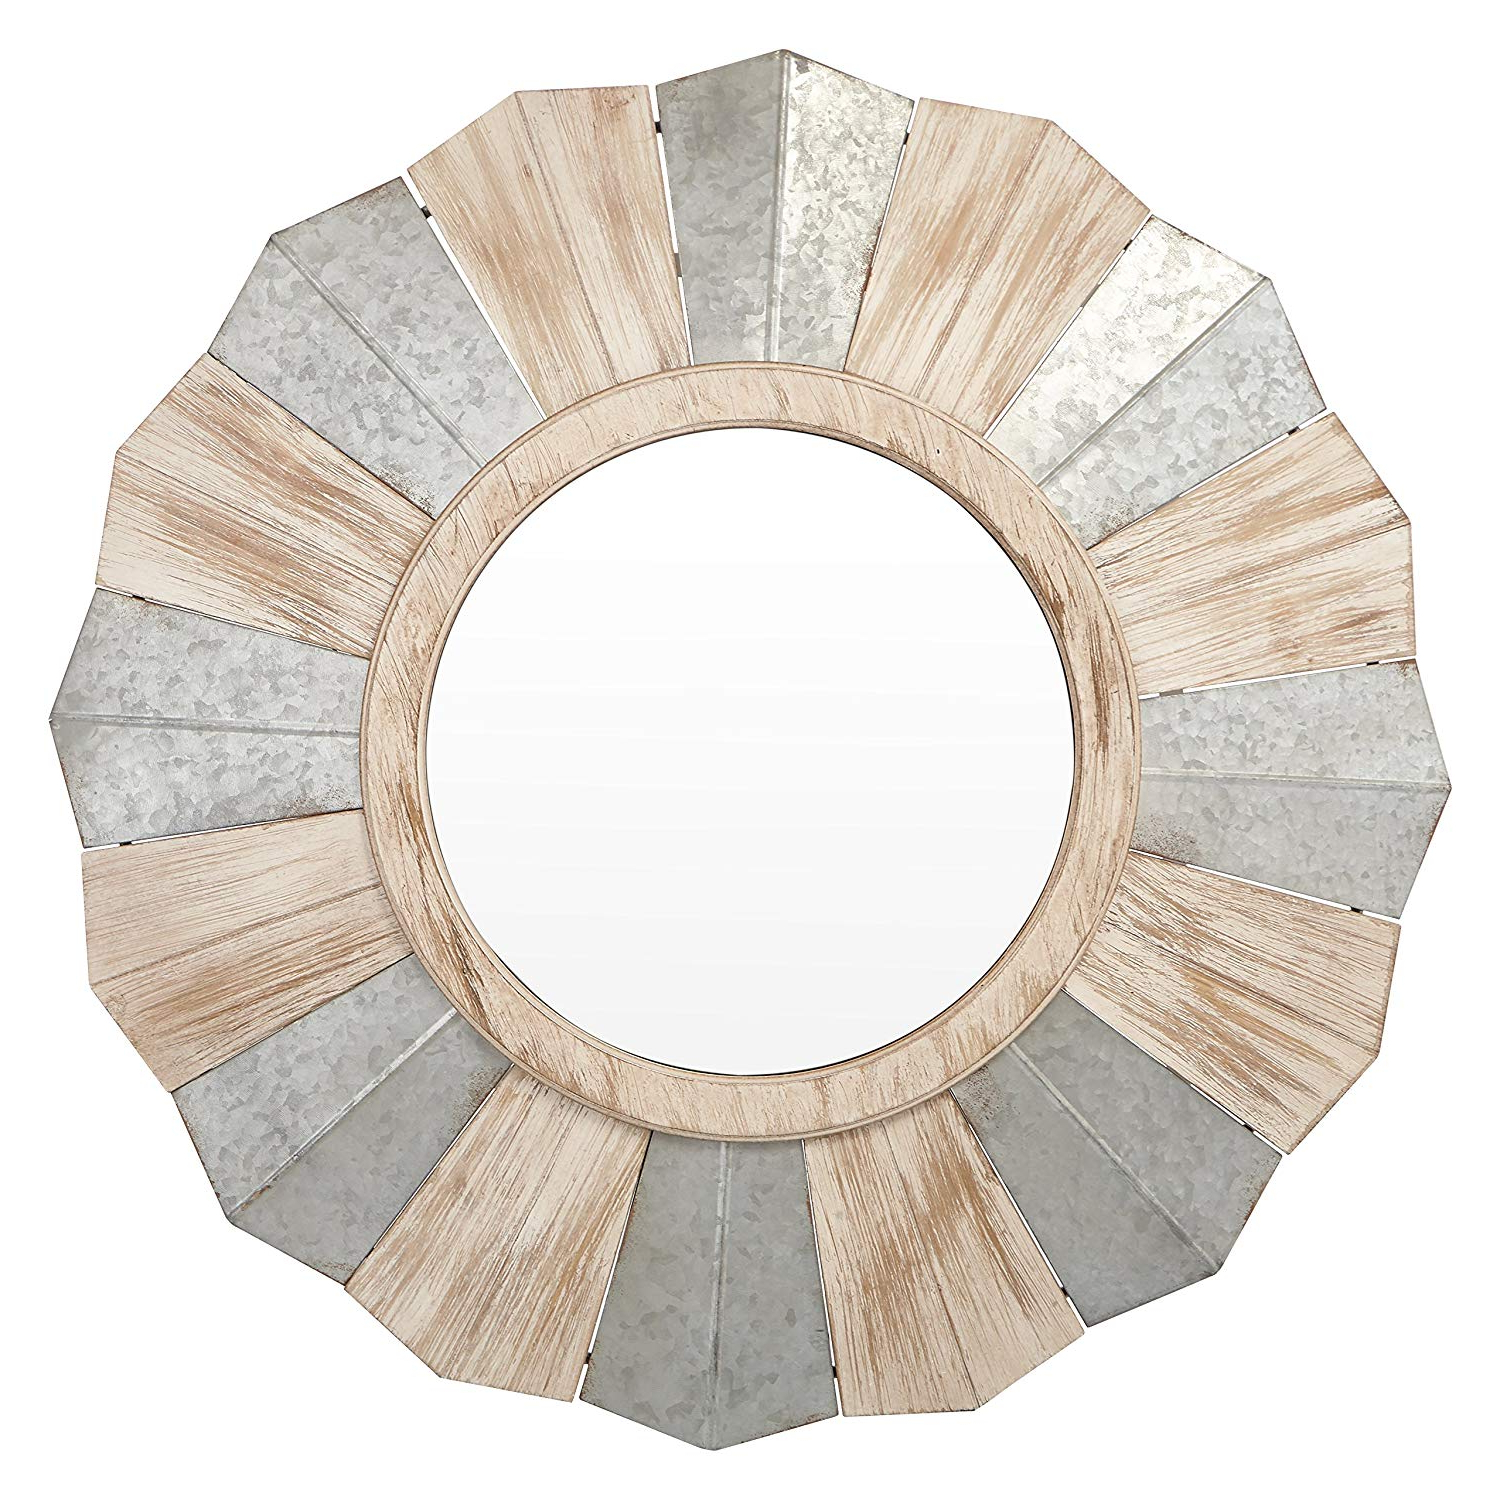 Round Galvanized Metallic Wall Mirrors Regarding Most Up To Date Amazon: Galvanized Metal And Wood Round Sunburst Style Wall (View 8 of 20)